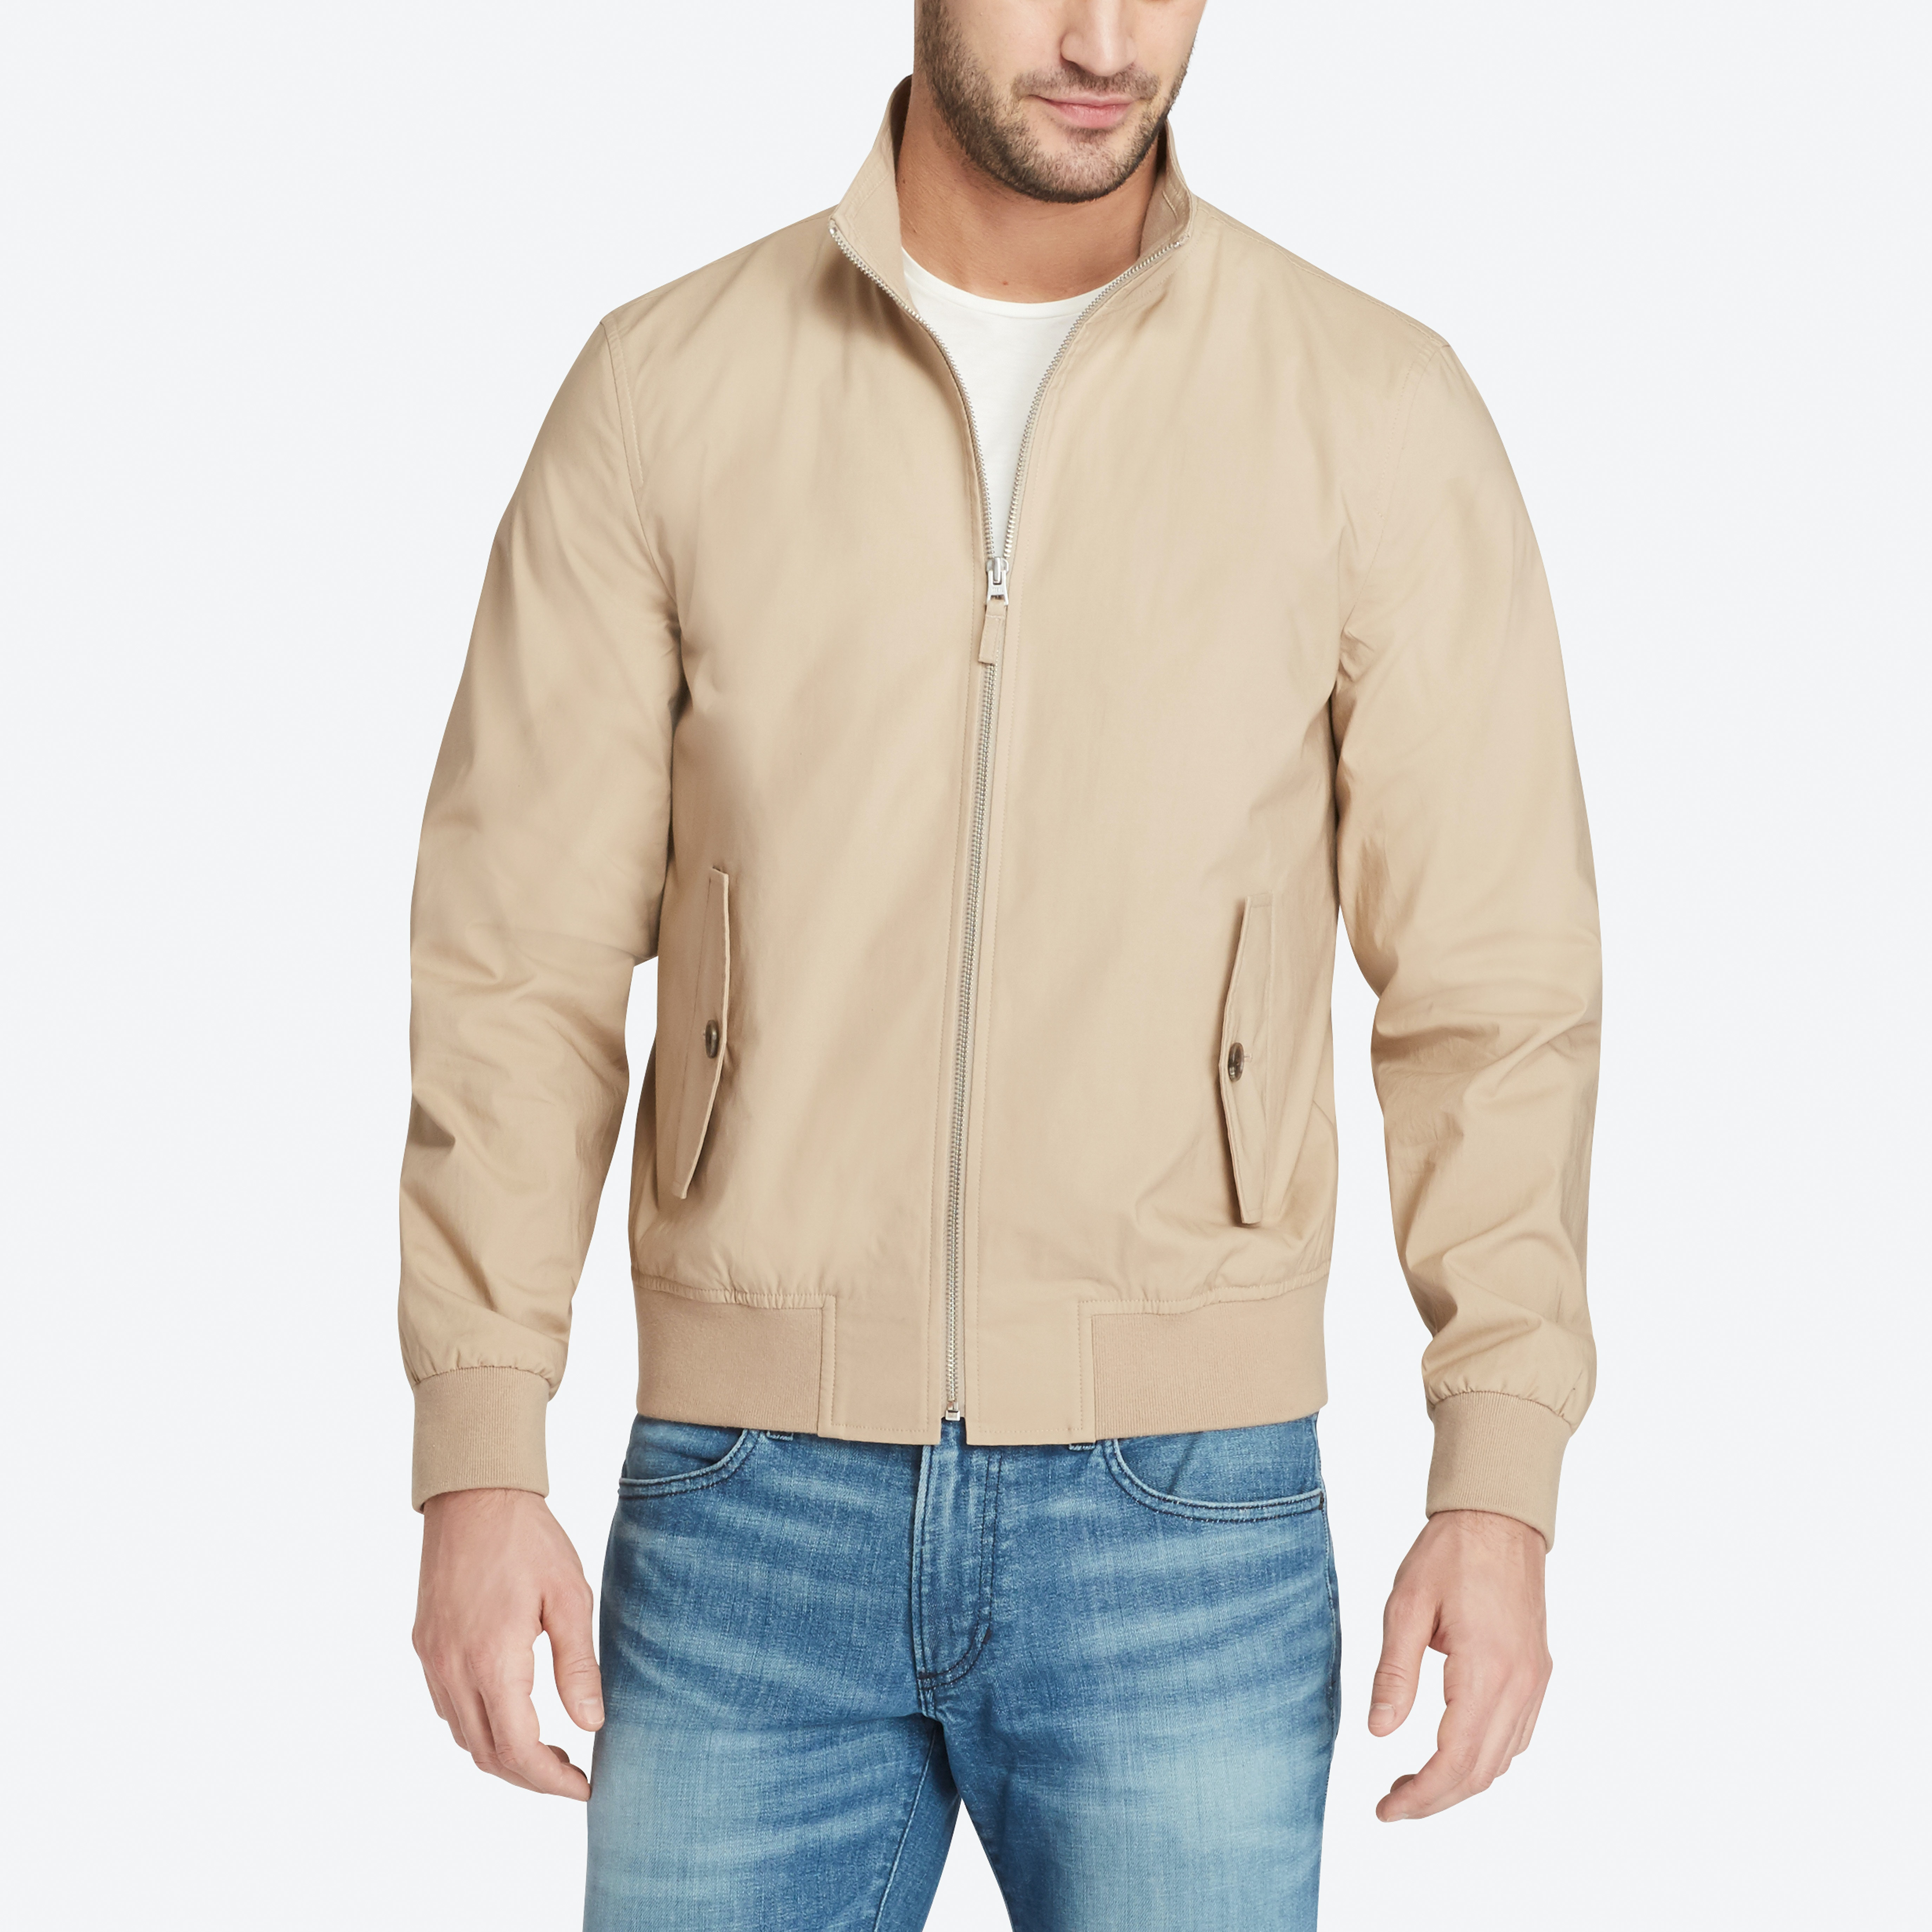 The Cotton Bomber Jacket